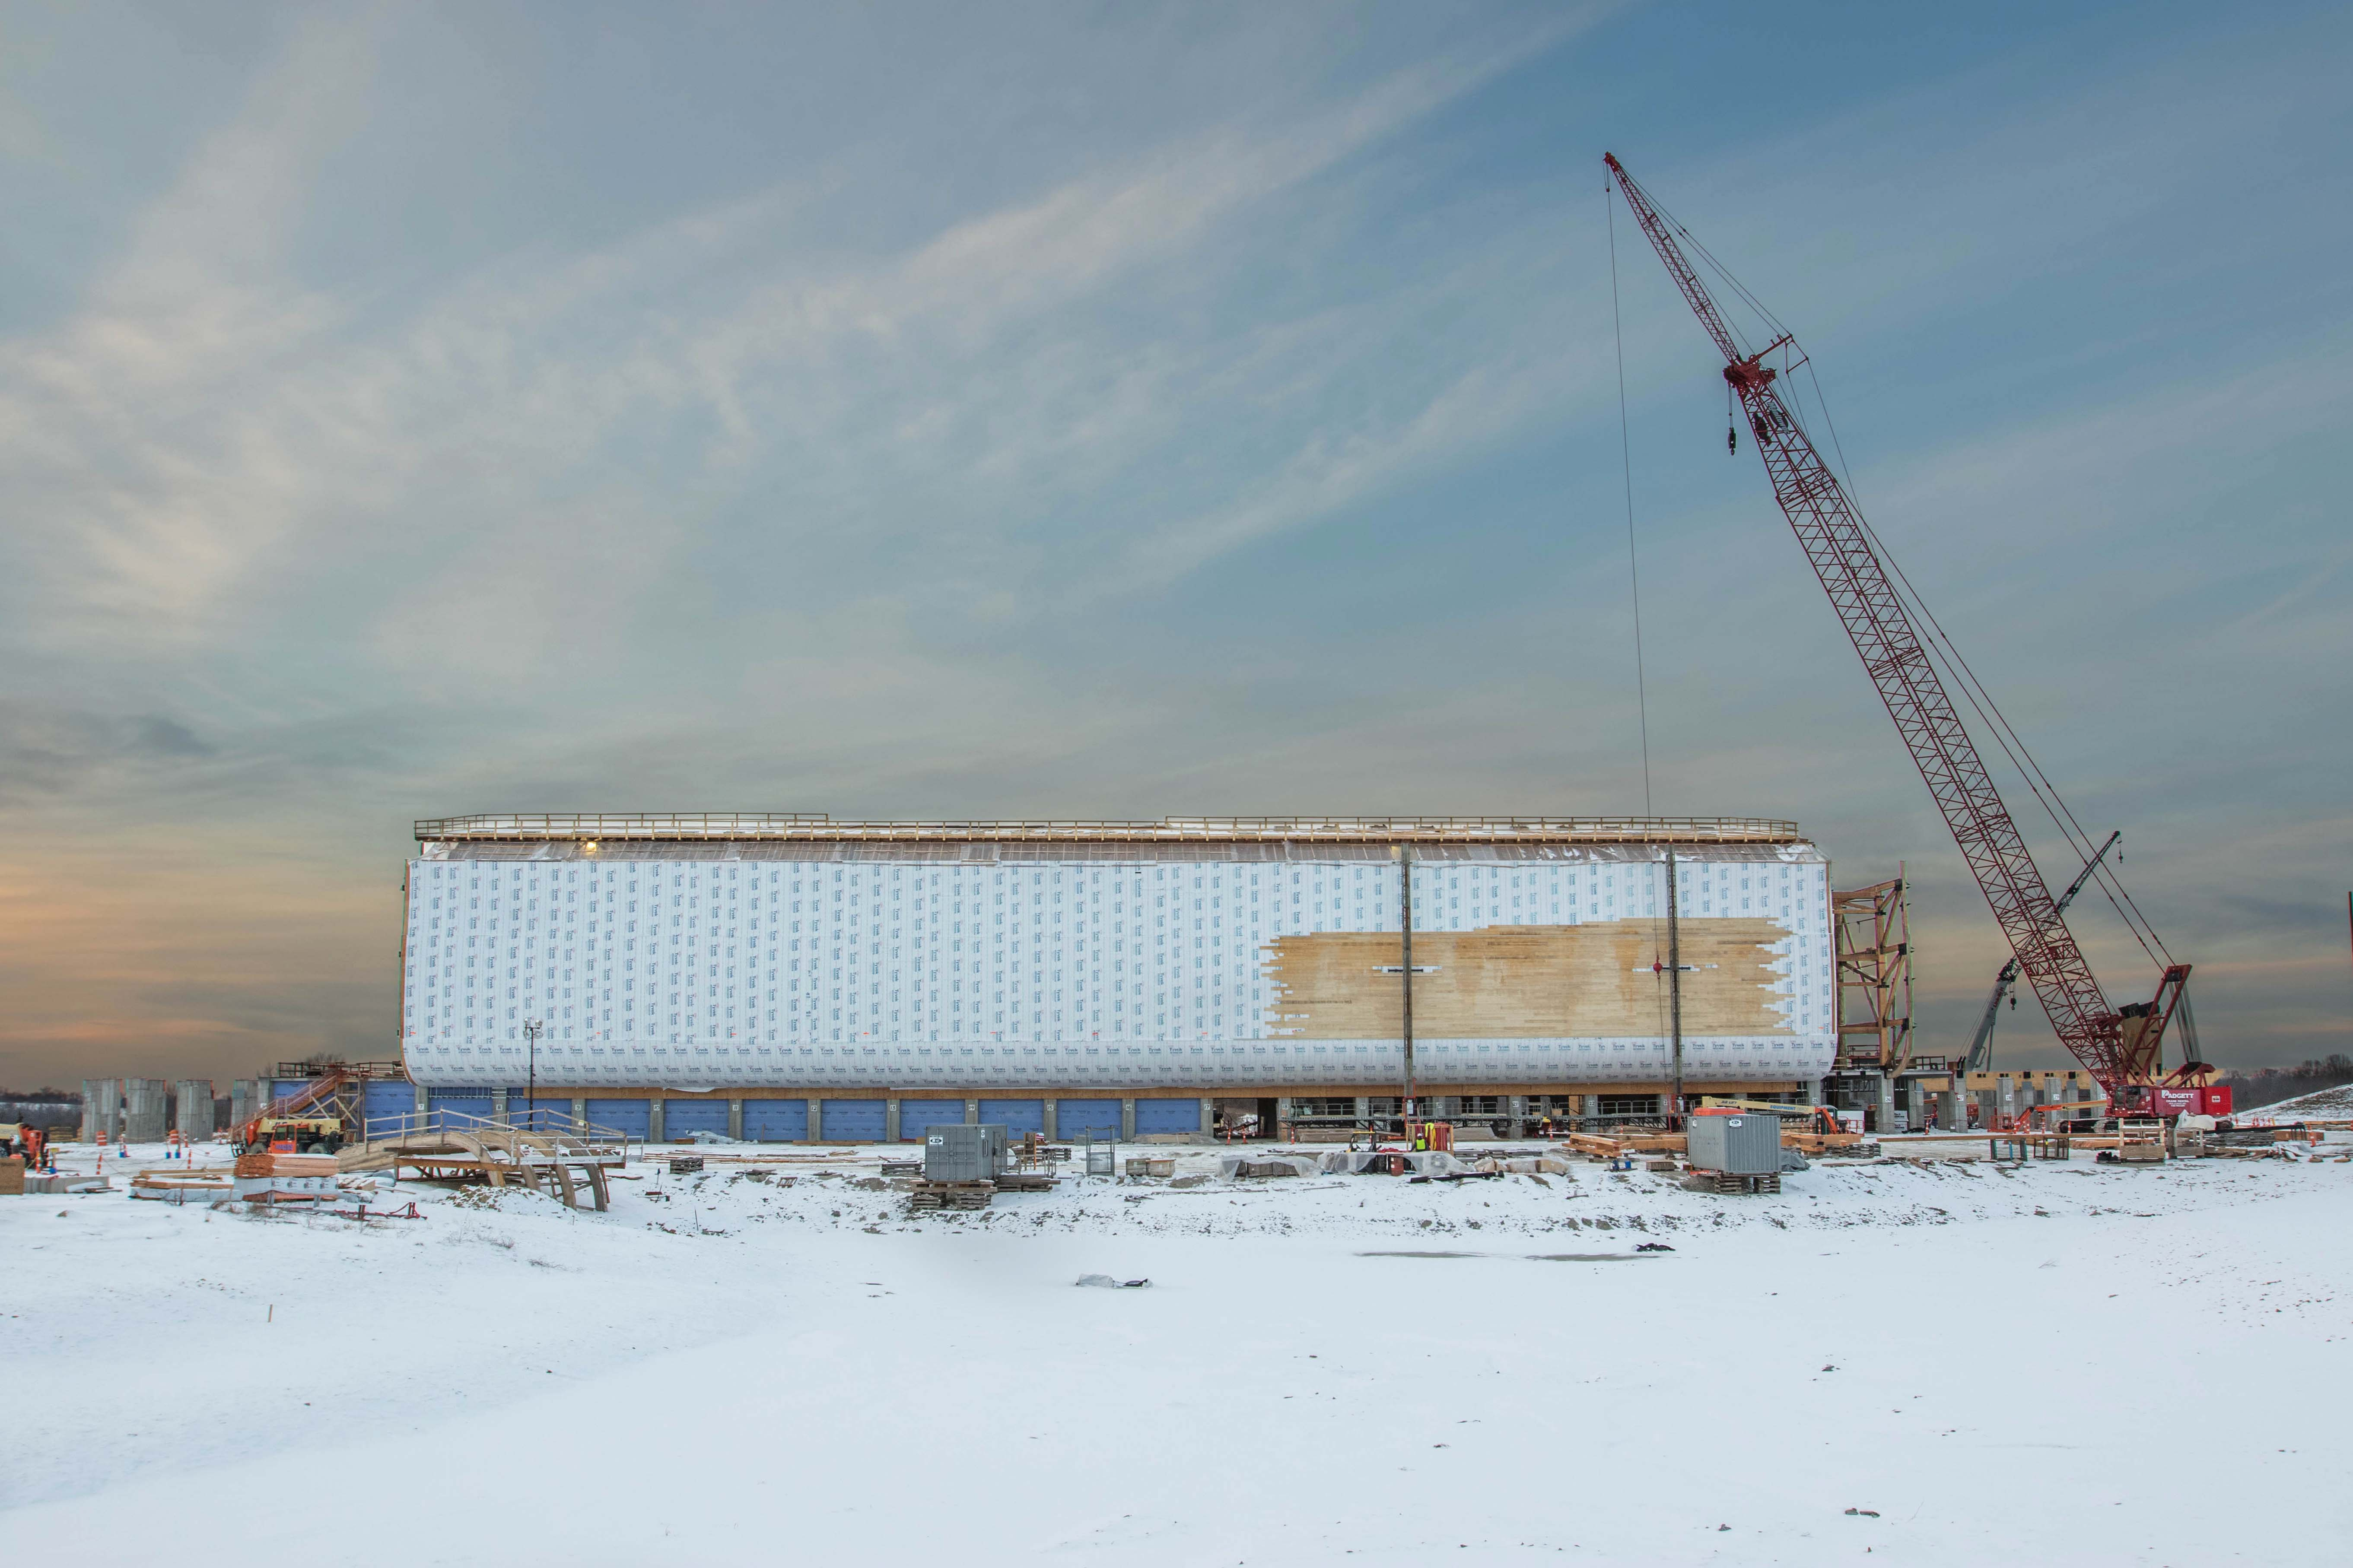 Snow days at the Ark Encounter construction site